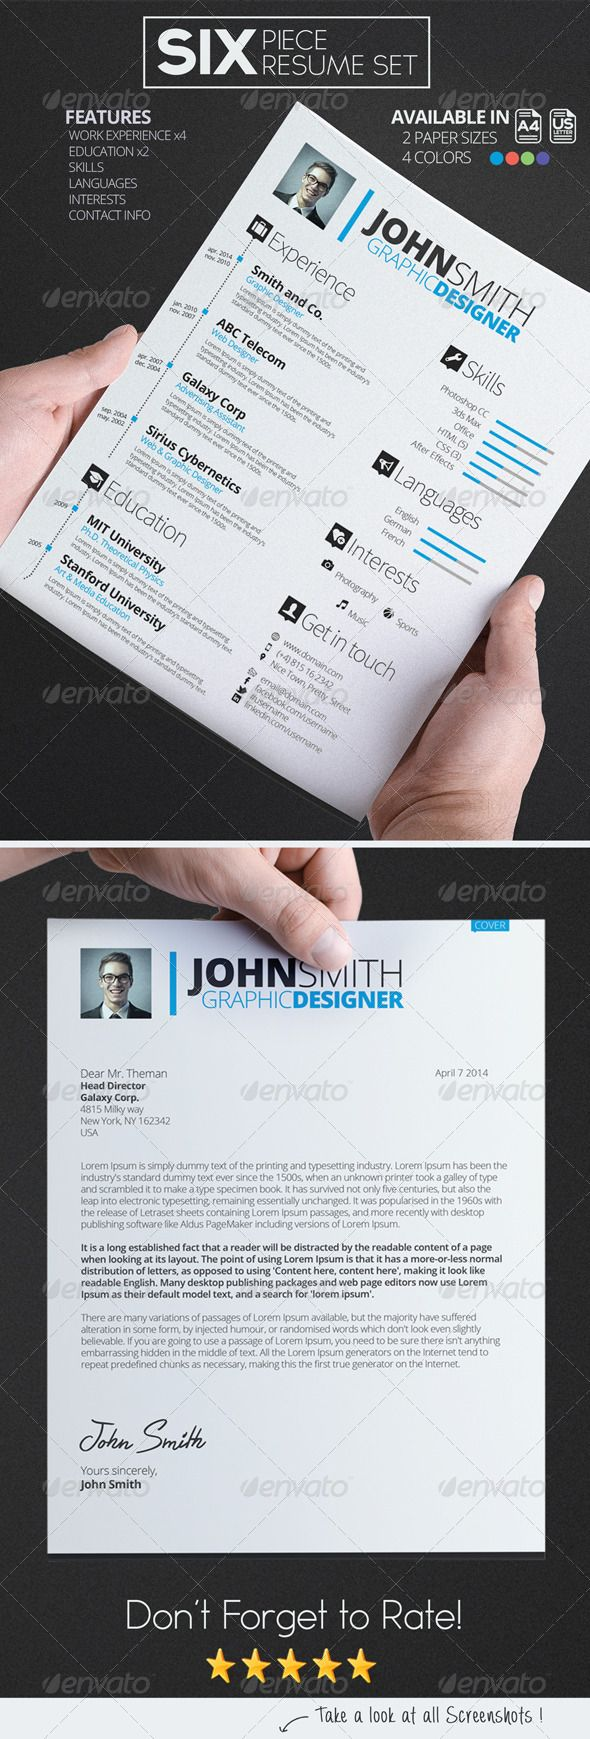 A perfect Resume Set to get that great job! #psd #template